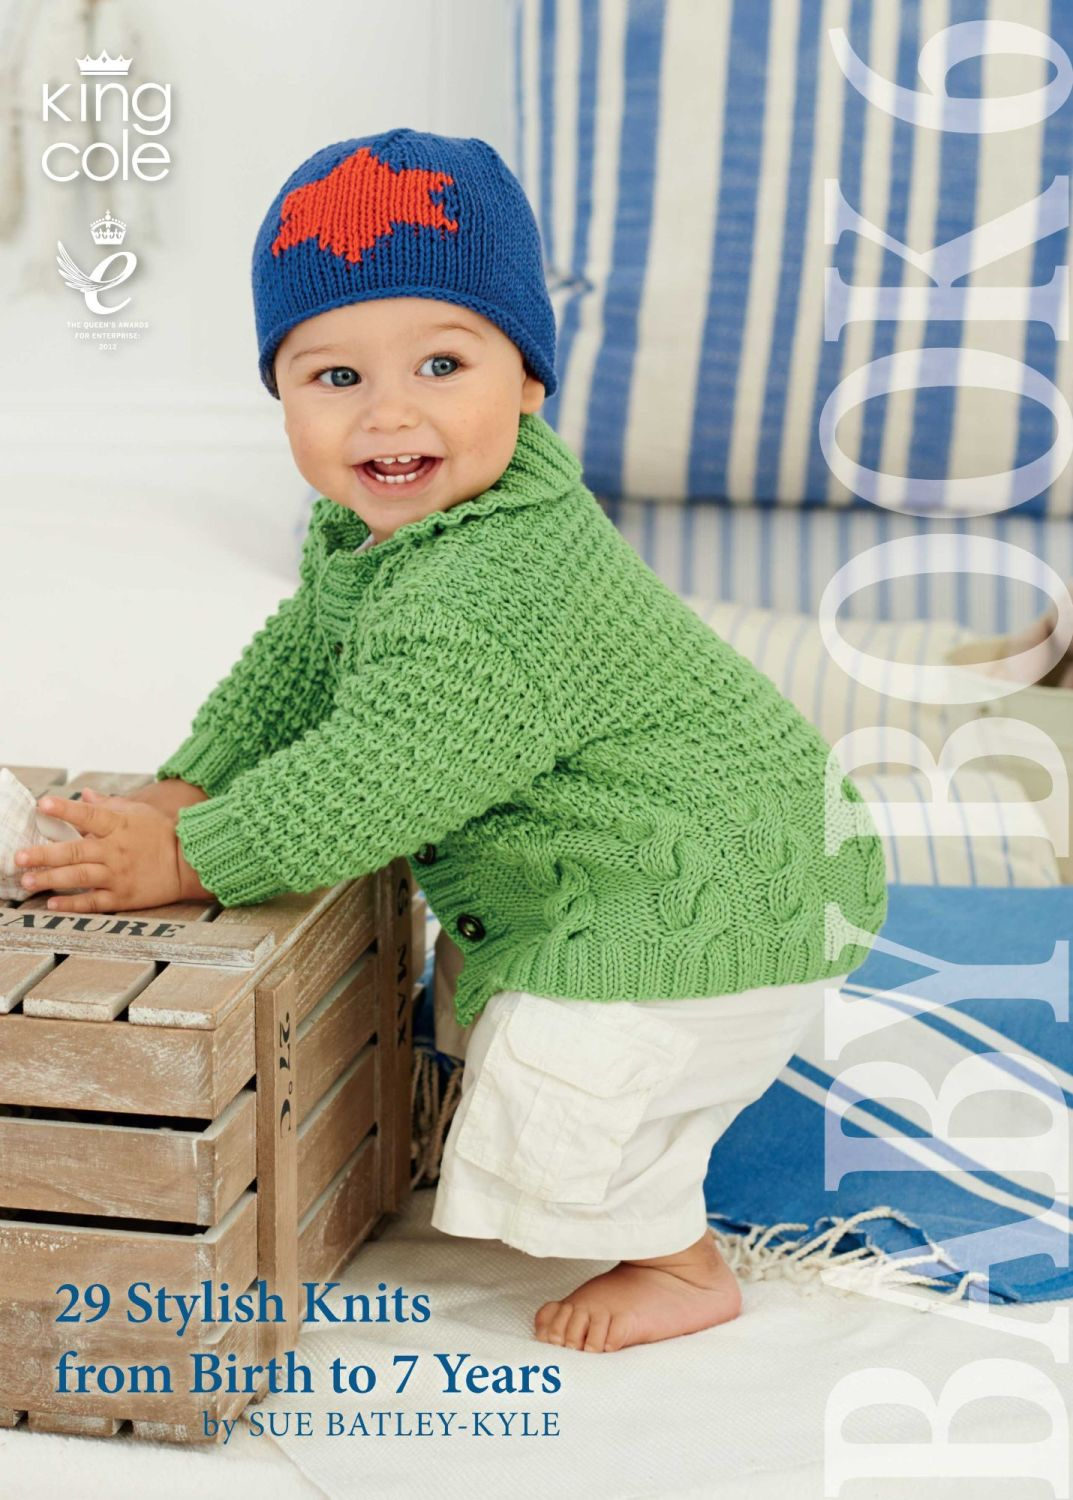 Baby Book 6 - King Cole Knitting Patterns